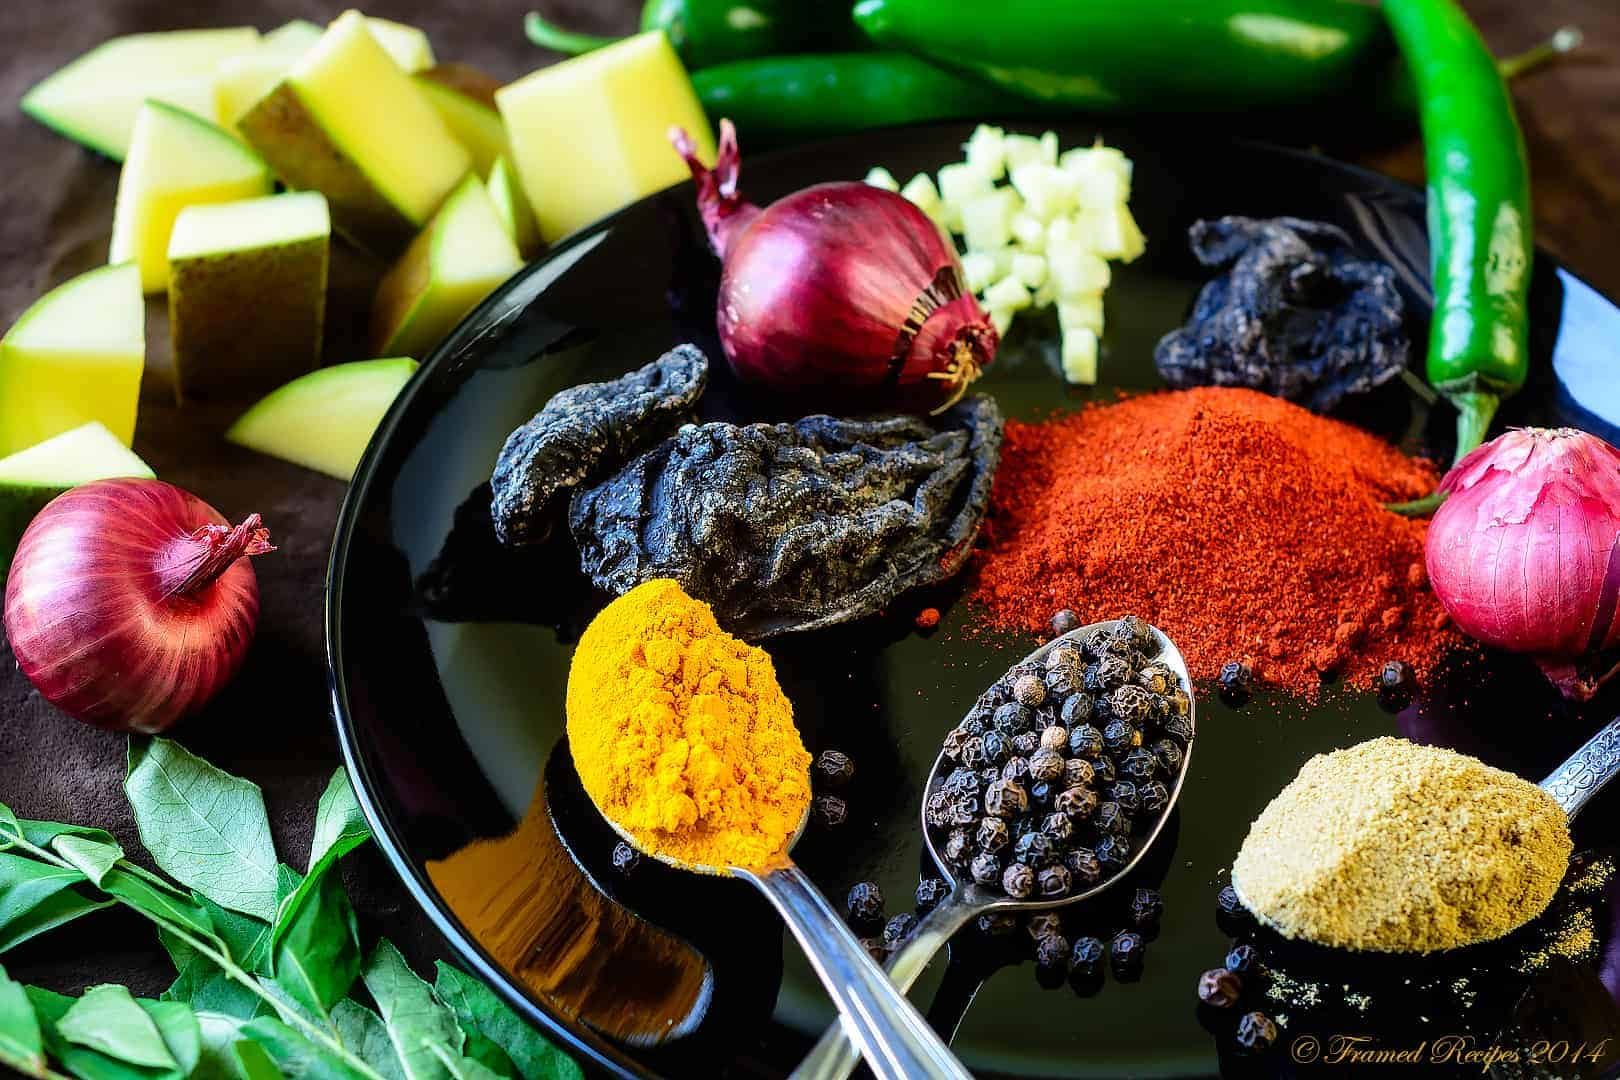 spices for Kerala style fish curry - mango, green chillies, whole black pepper, red chilli powder, coriander powder, curry leaves, shallots, tamarind and turmeric.